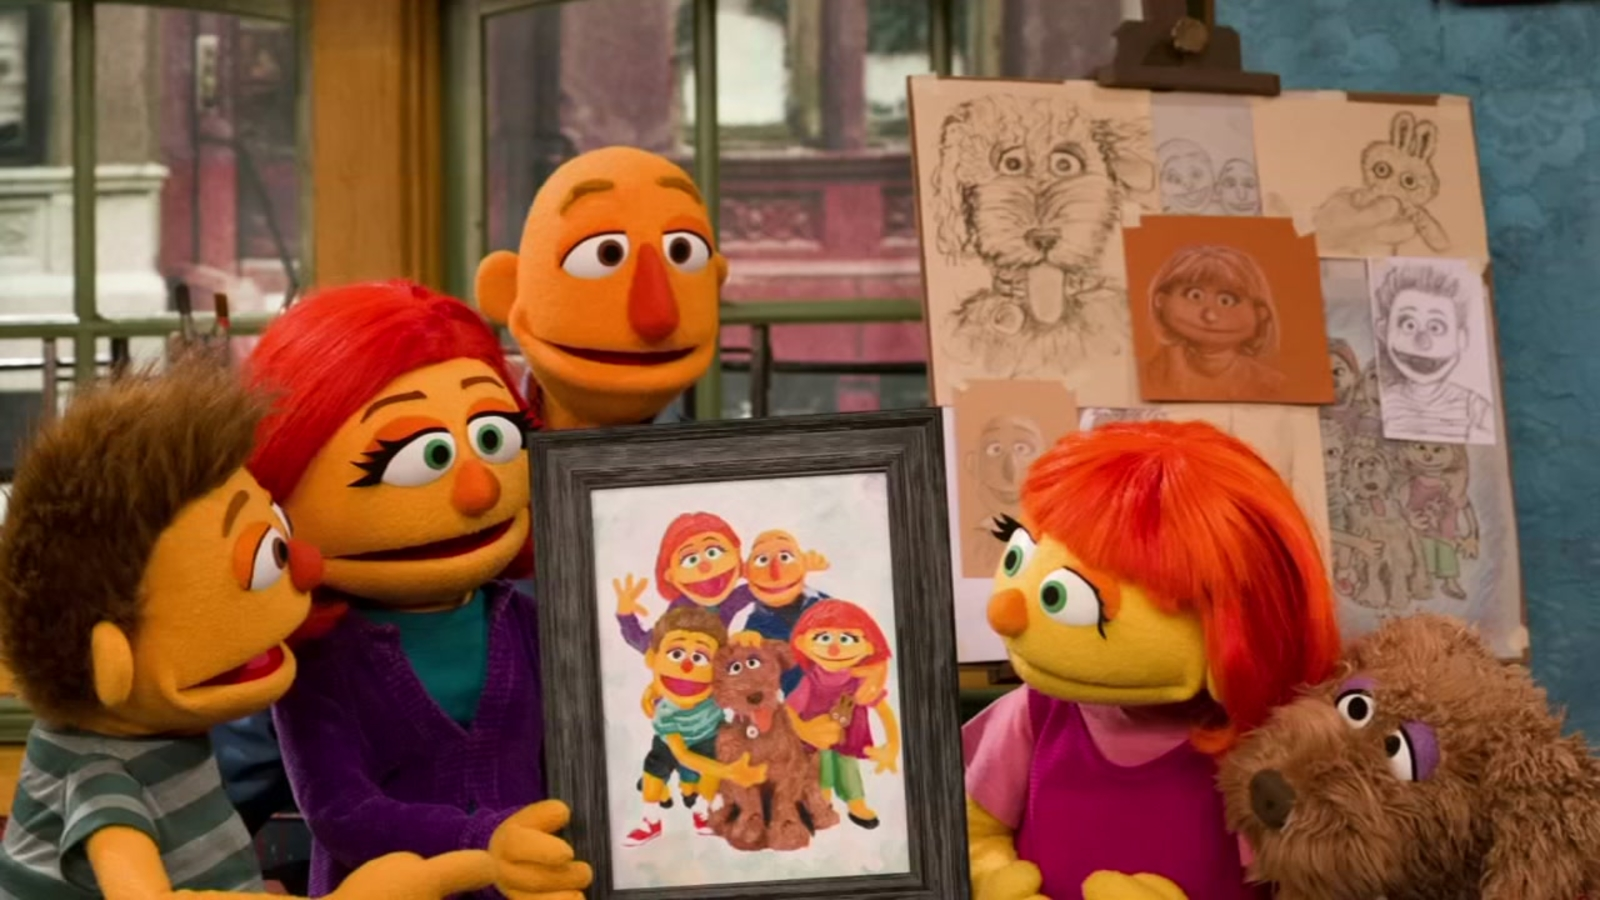 It is an image of Soft Sesame Street Images